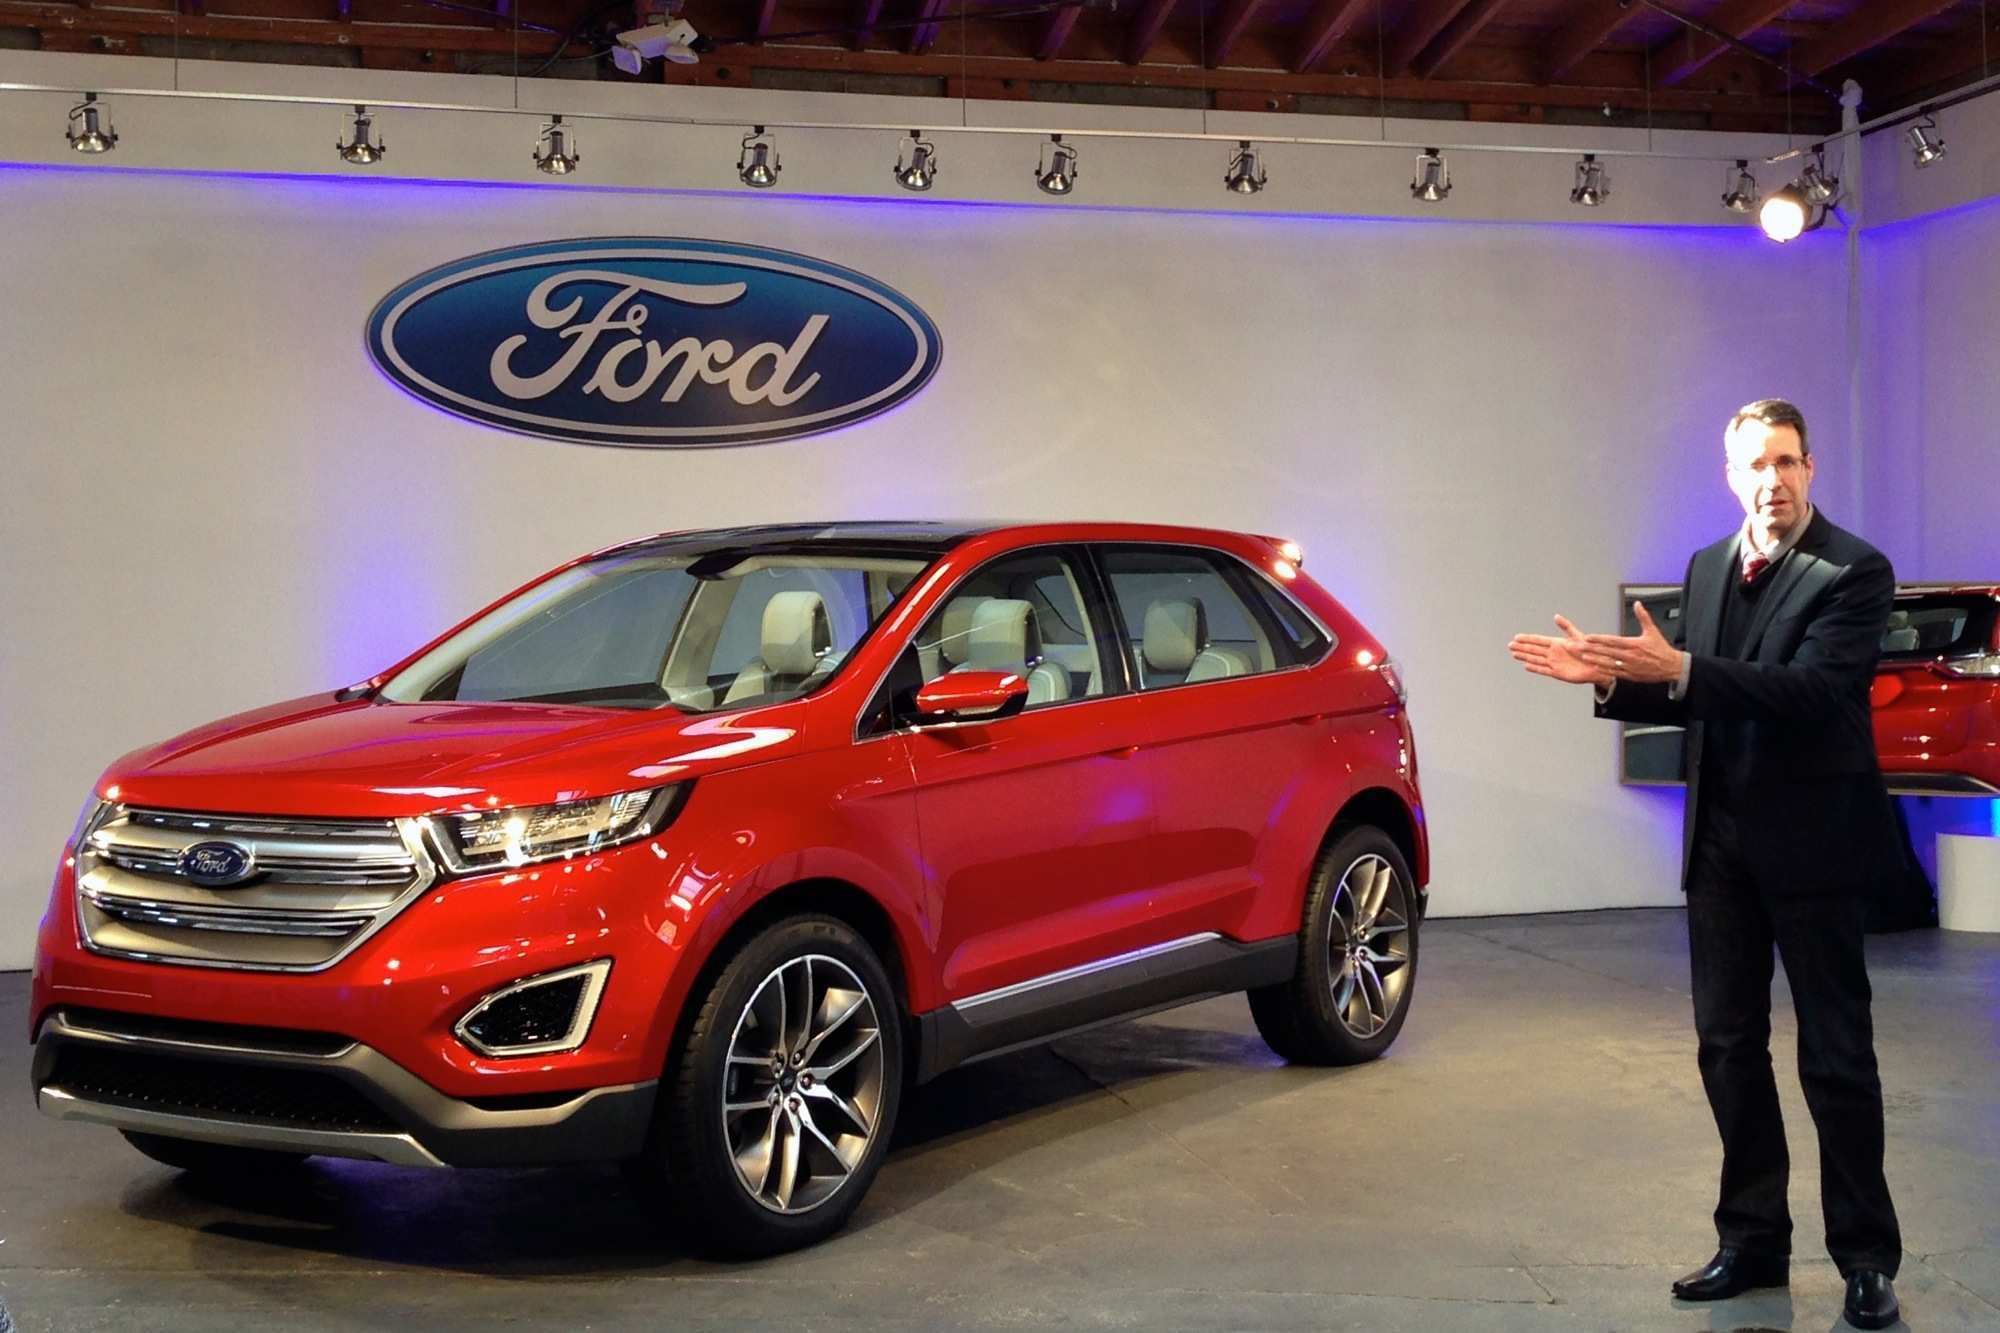 68 All New Ford Edge New Design Review And Release Date